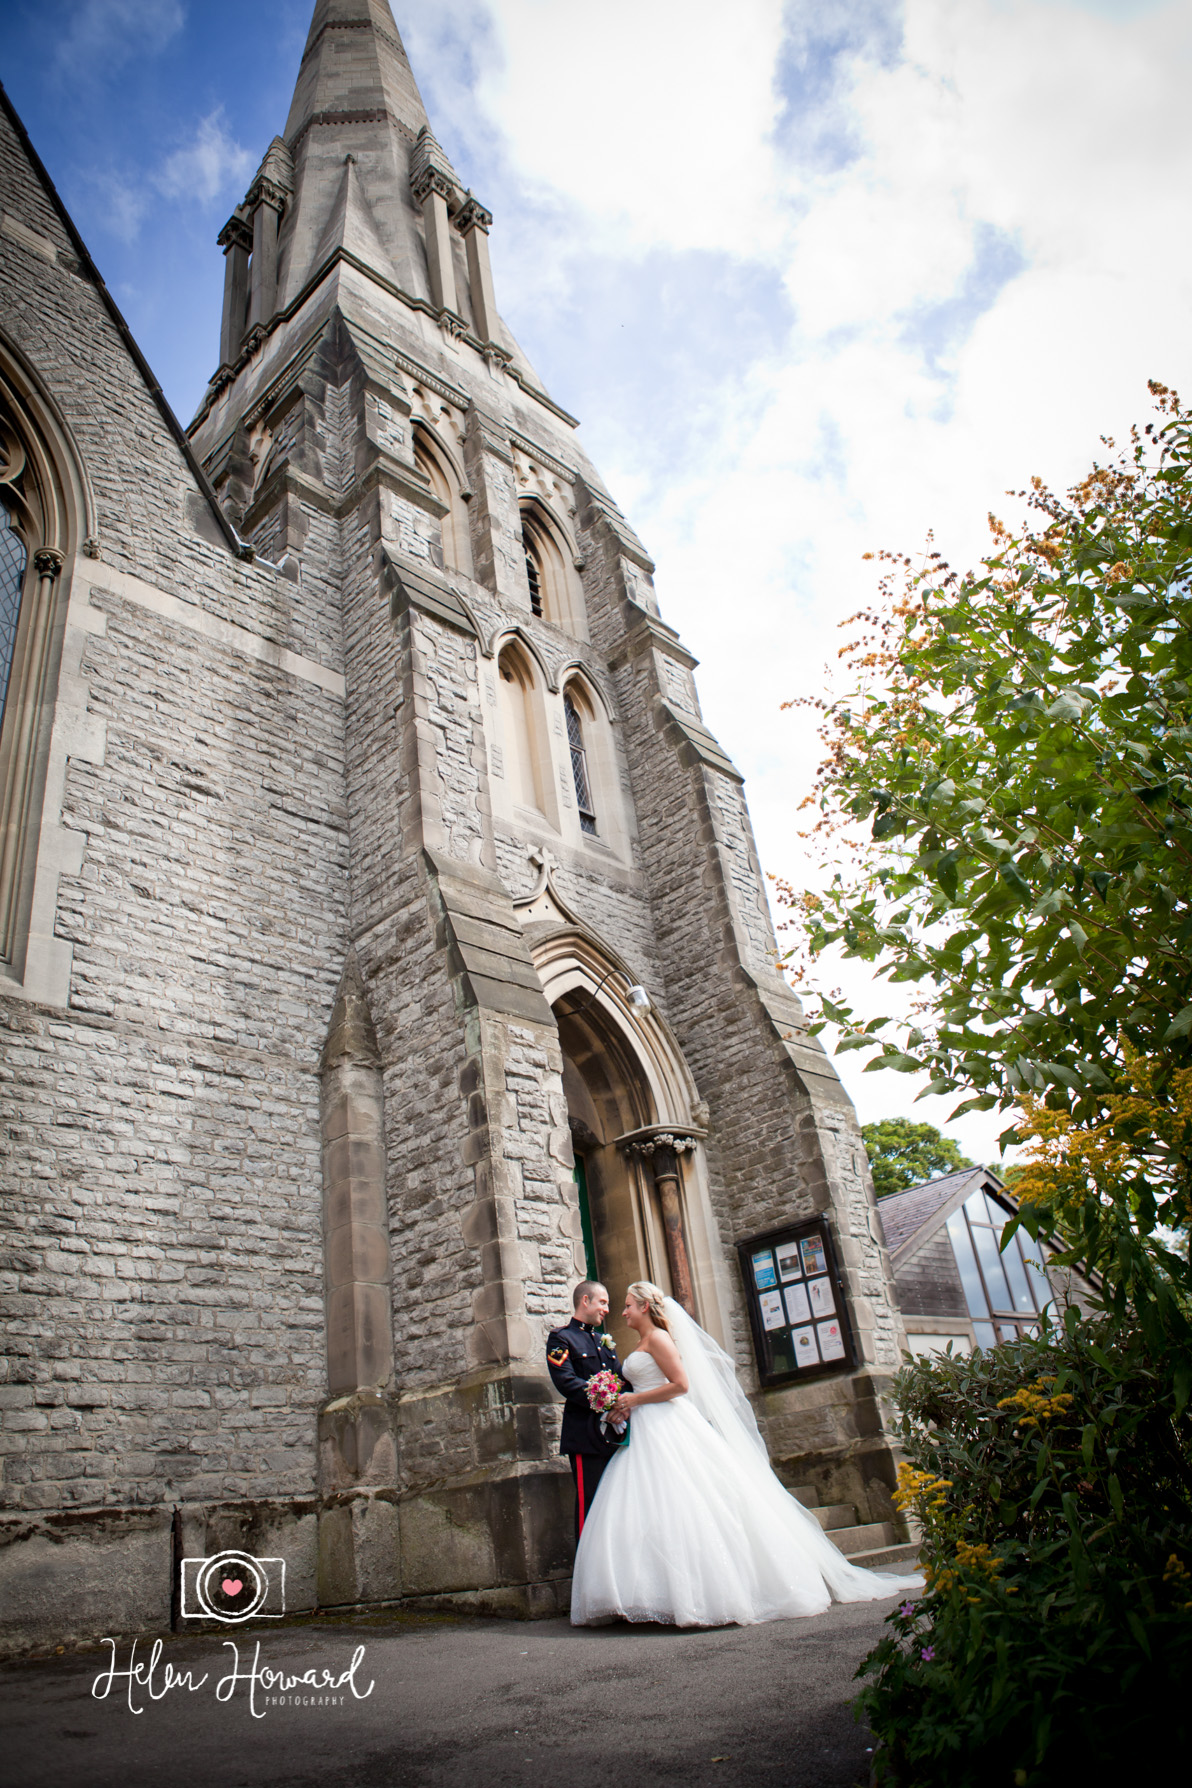 Bride and Groom outside the church wedding photography in Aldridge